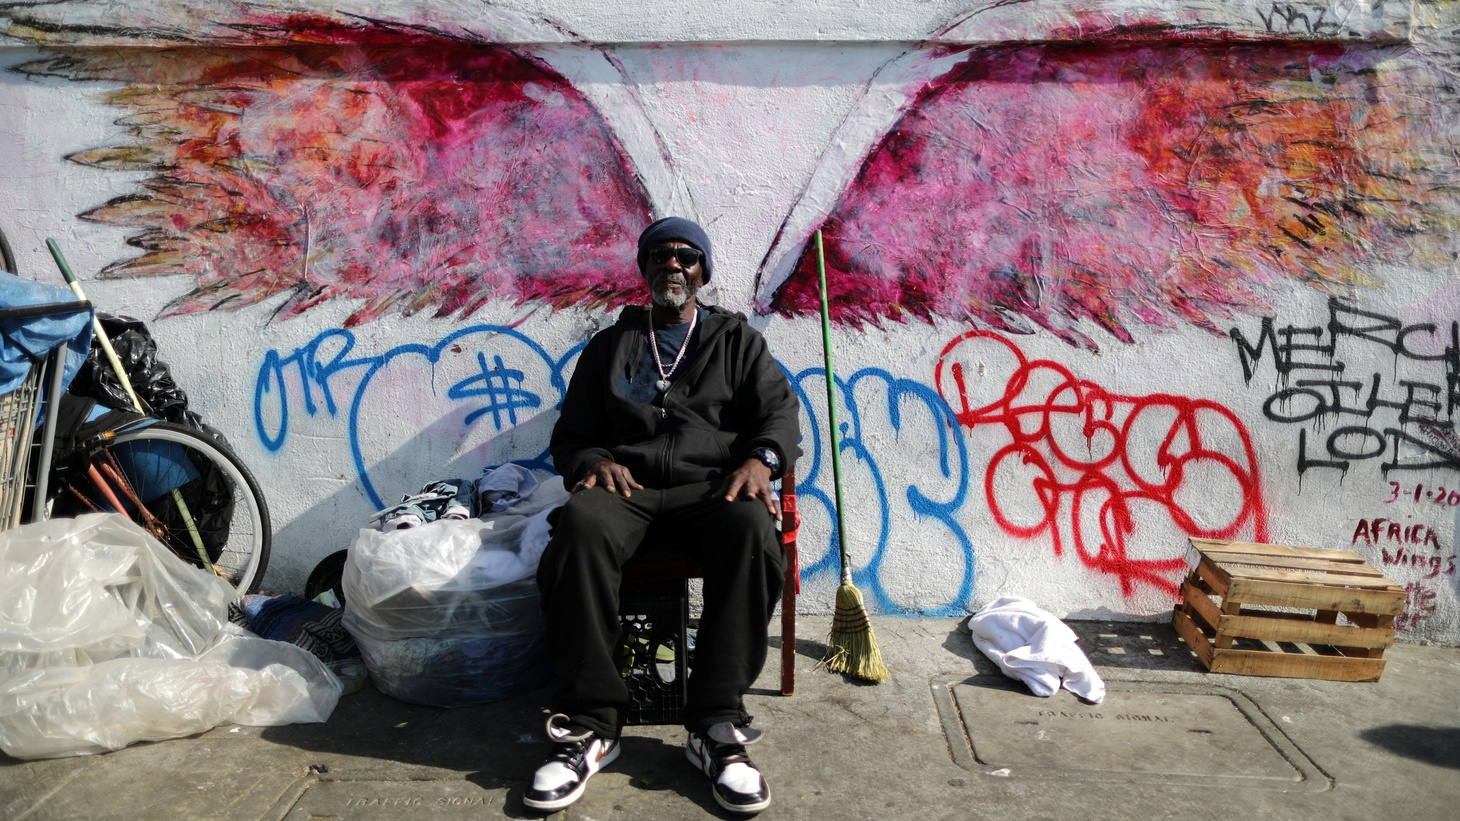 Willie Bassie, 58, sits next to his tent on Skid Row in Los Angeles, October 14, 2019. A new report shows more than 66,000 people are unhoused, despite a multi-million dollar measure aiming to bring help to the streets.